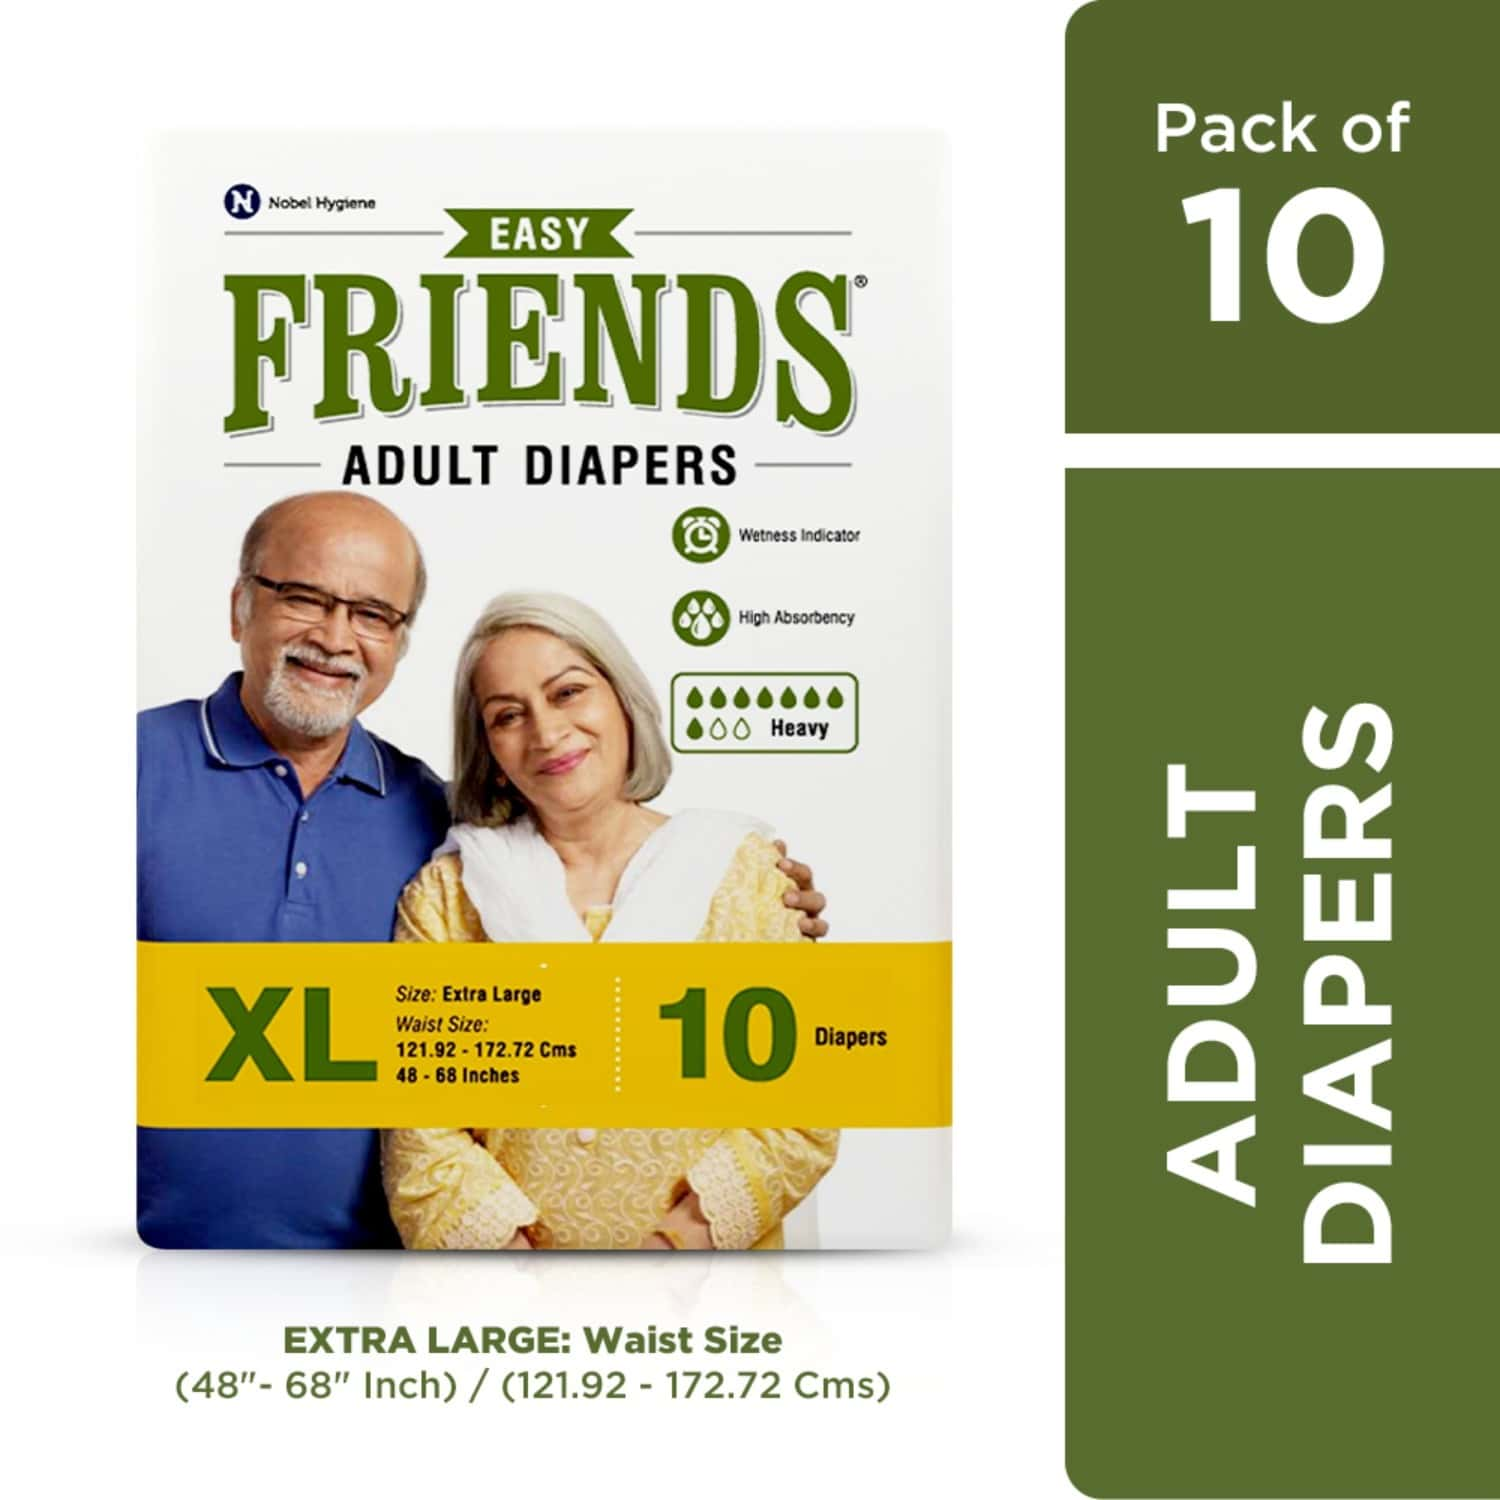 Friends Easy Adult Diapers Xl Size, Waist 48-68 Inch, High Absorbency Anti-bacterial Core, 10's Pack